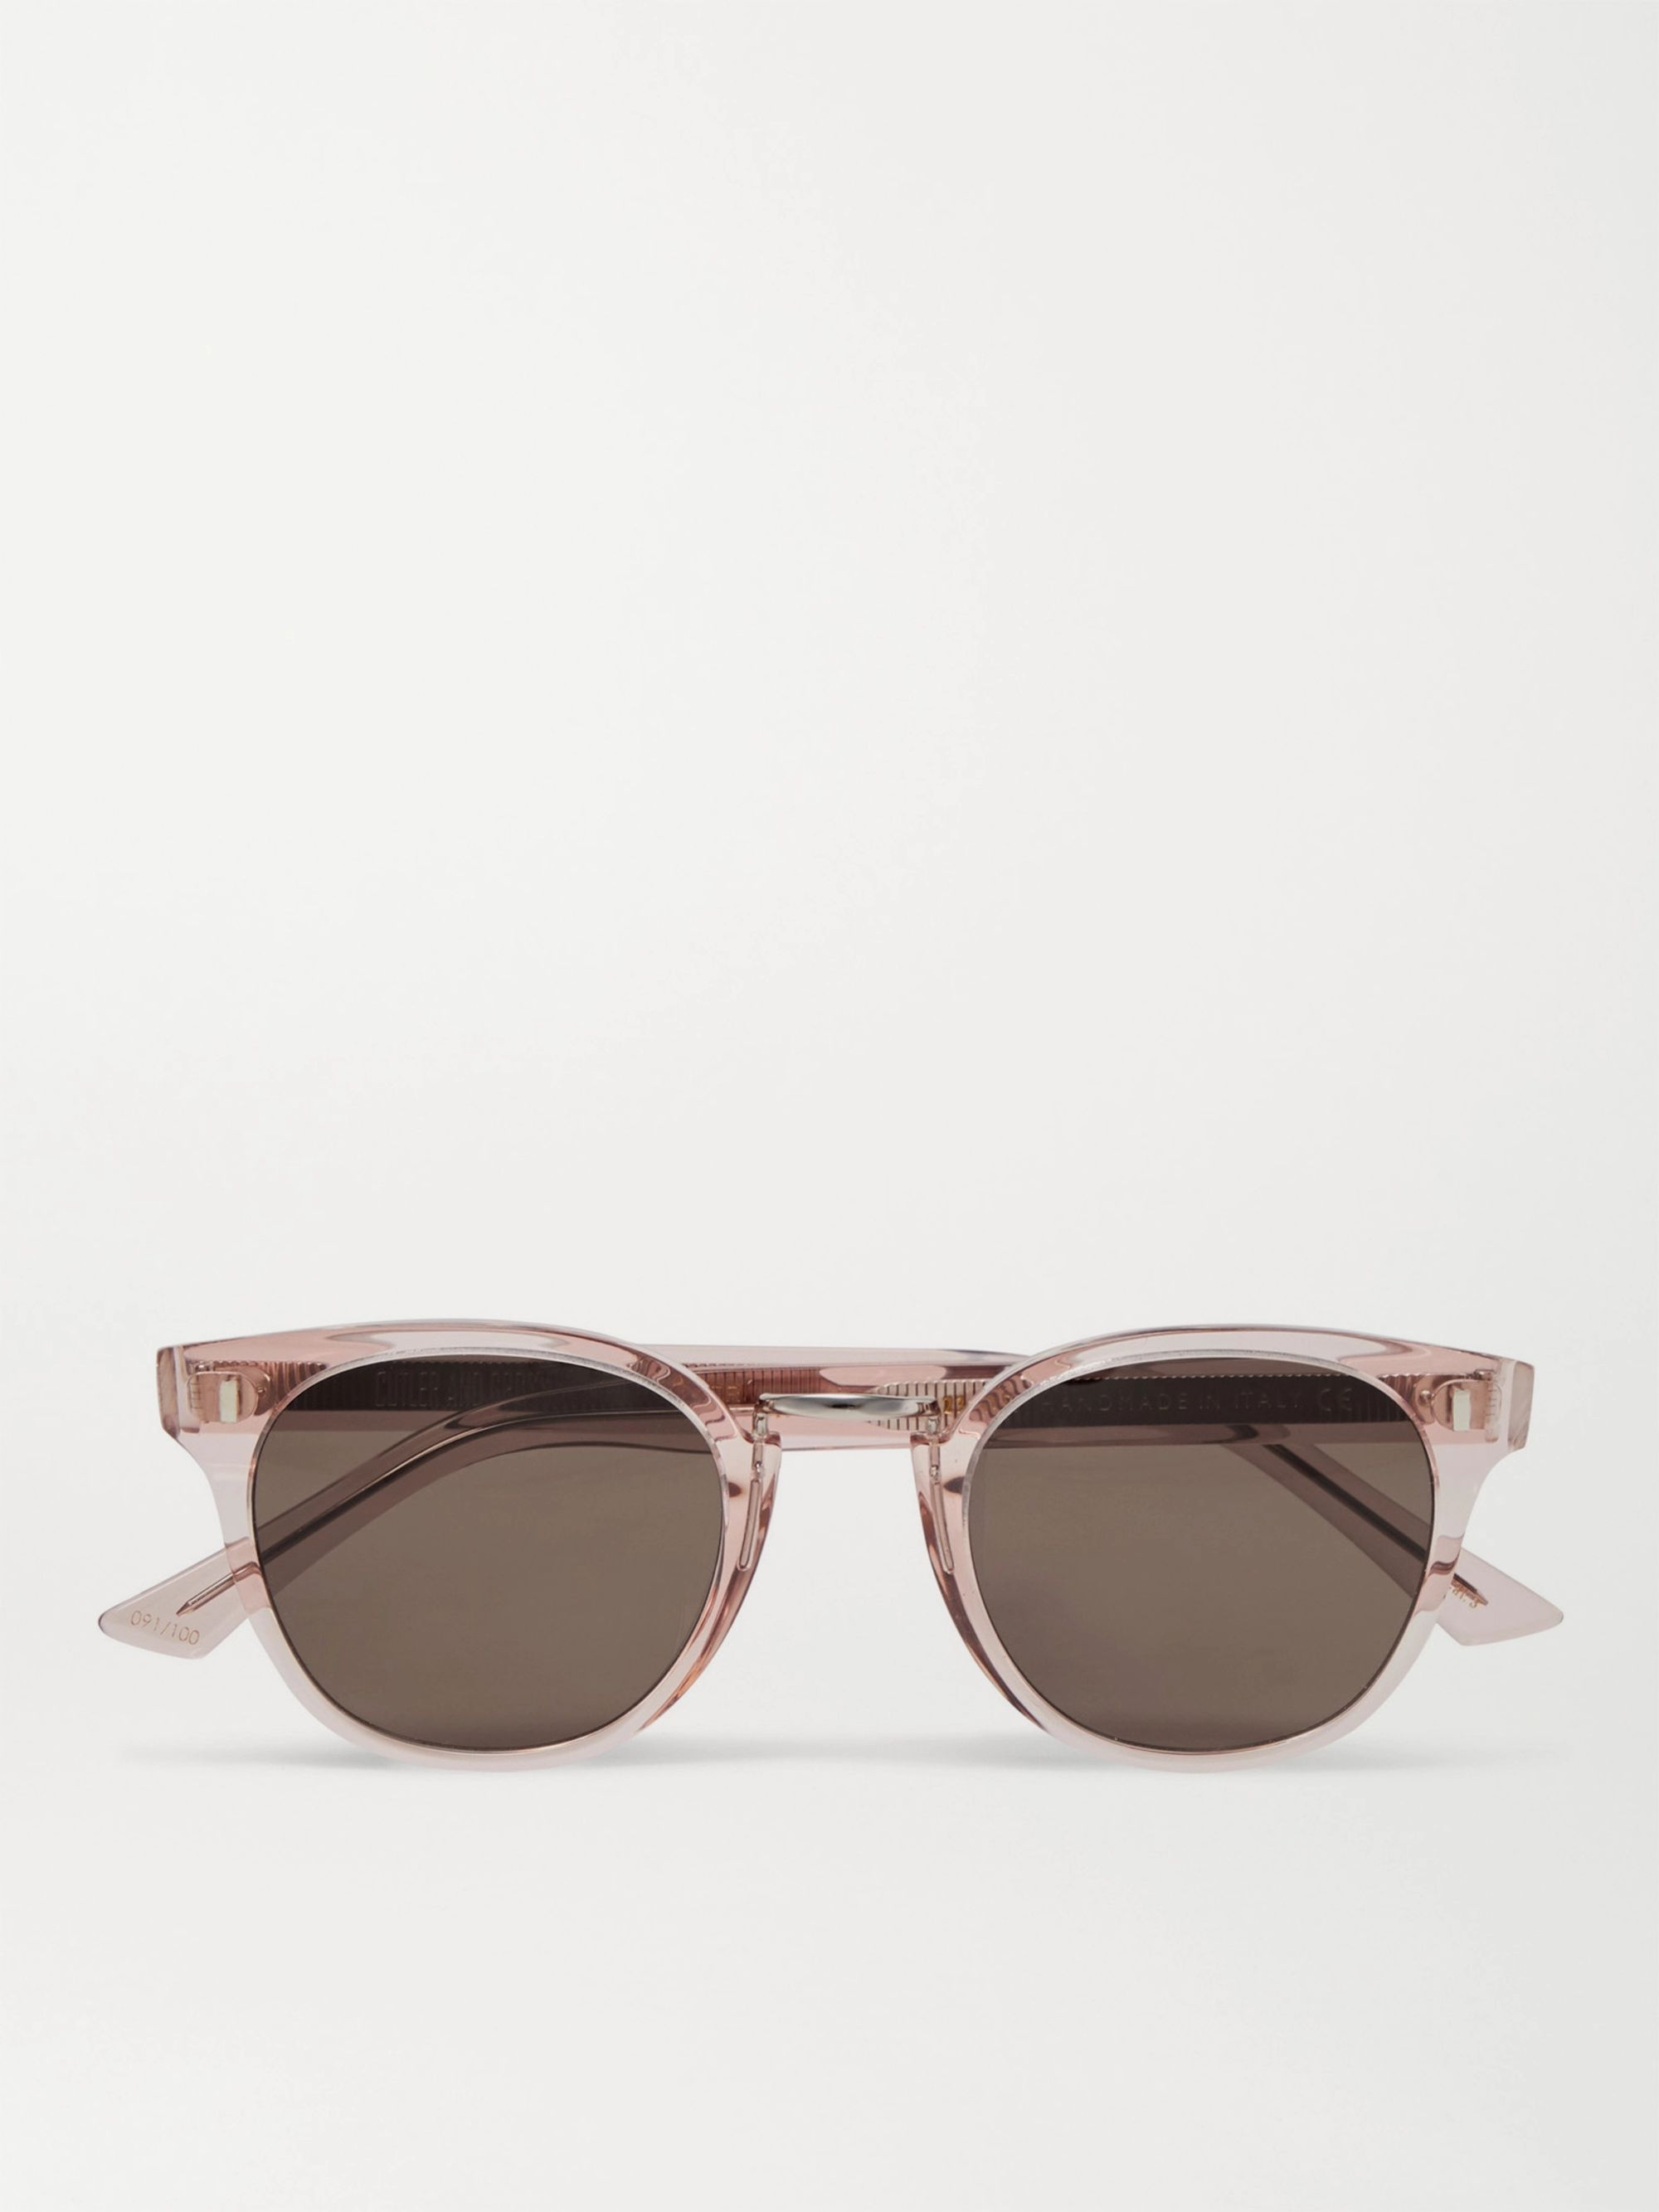 Cutler and Gross Round Frame Acetate Sunglasses